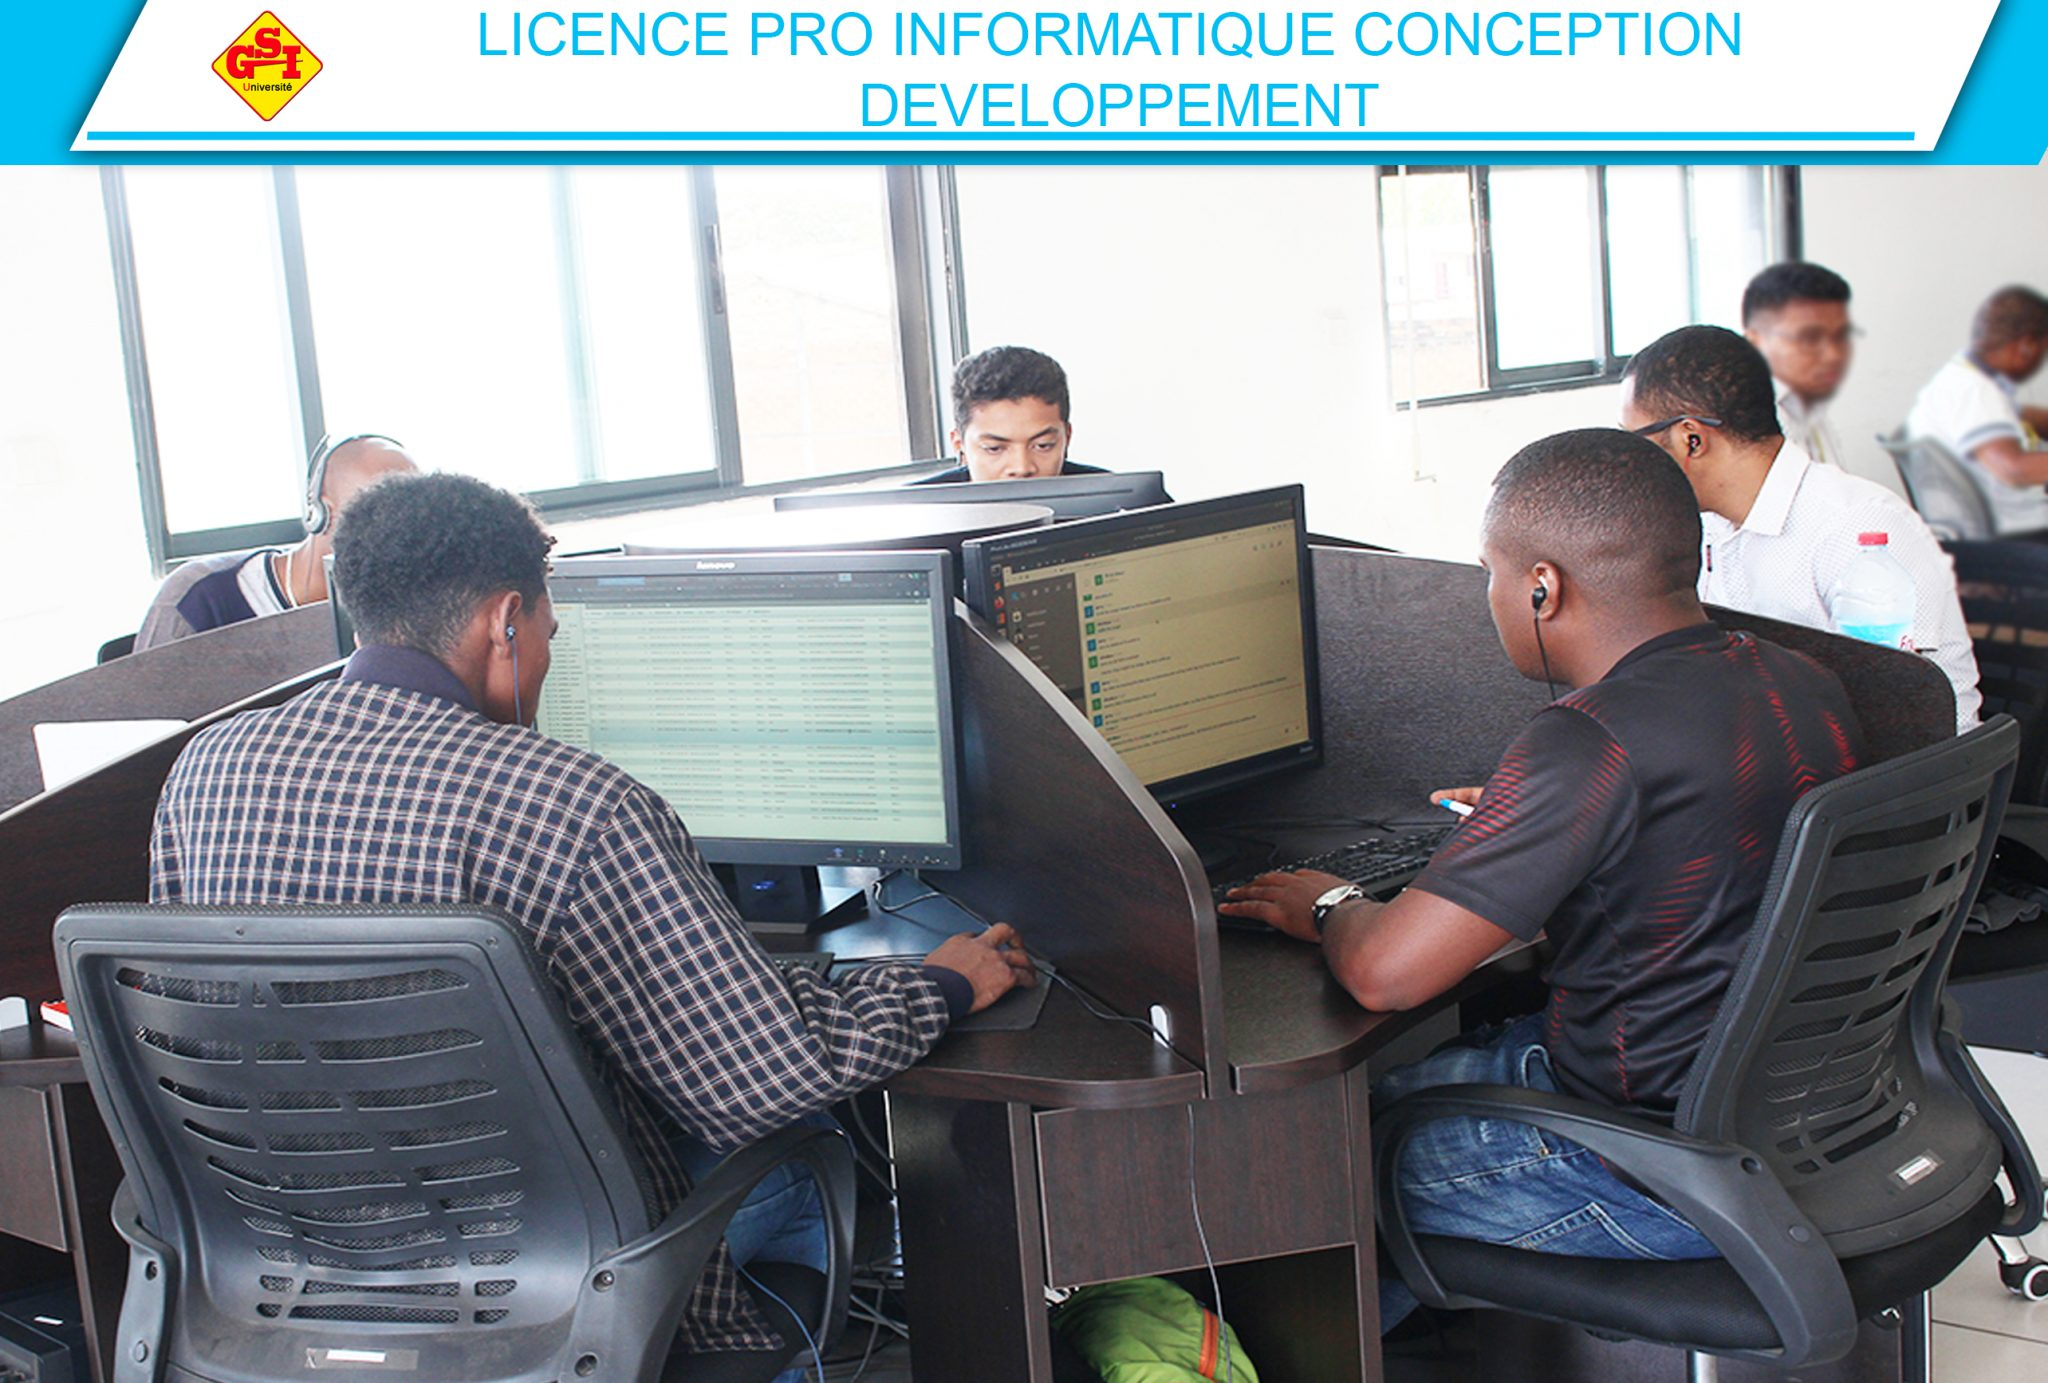 LICENCE PRO INFORMATIQUE CONCEPTION